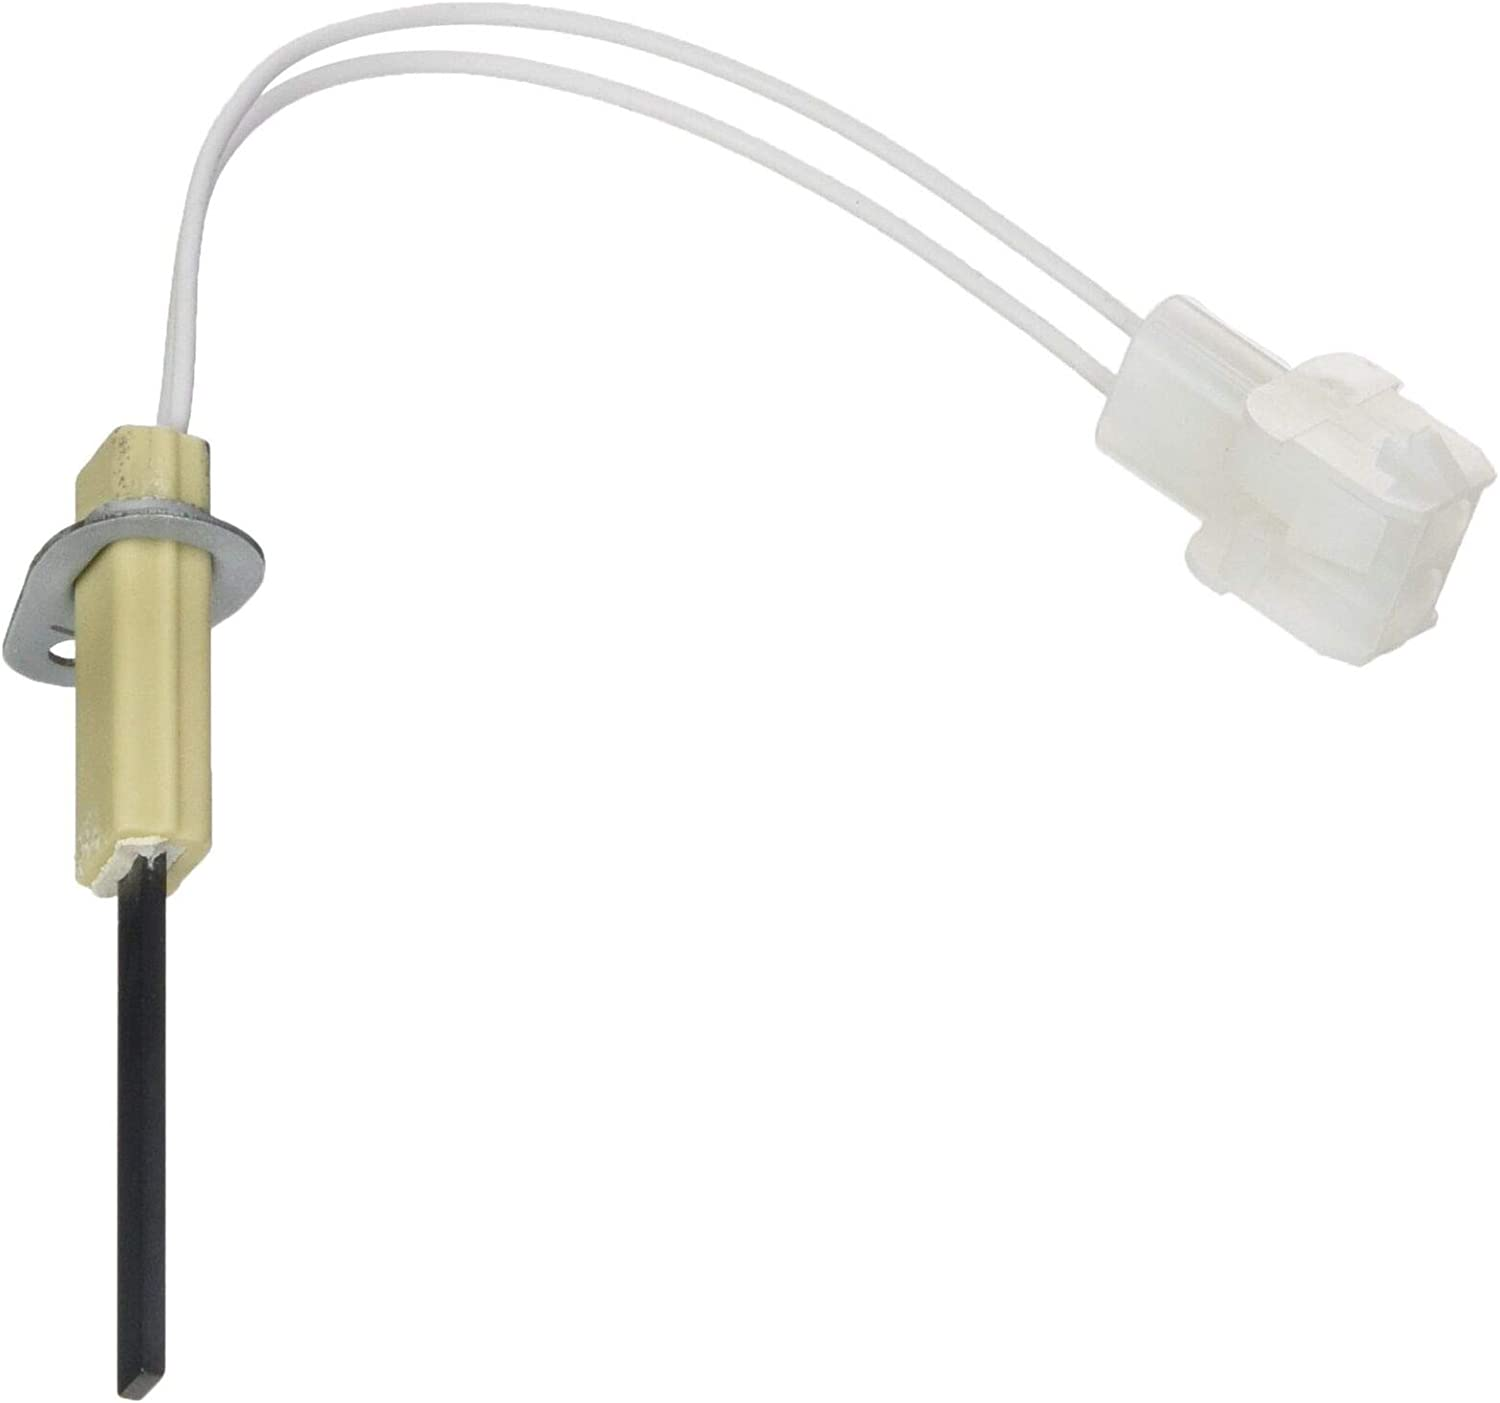 Max 65% OFF Sale special price 768A-843 768A-143 For White Rodgers for Ignitor Thermo P Furnace